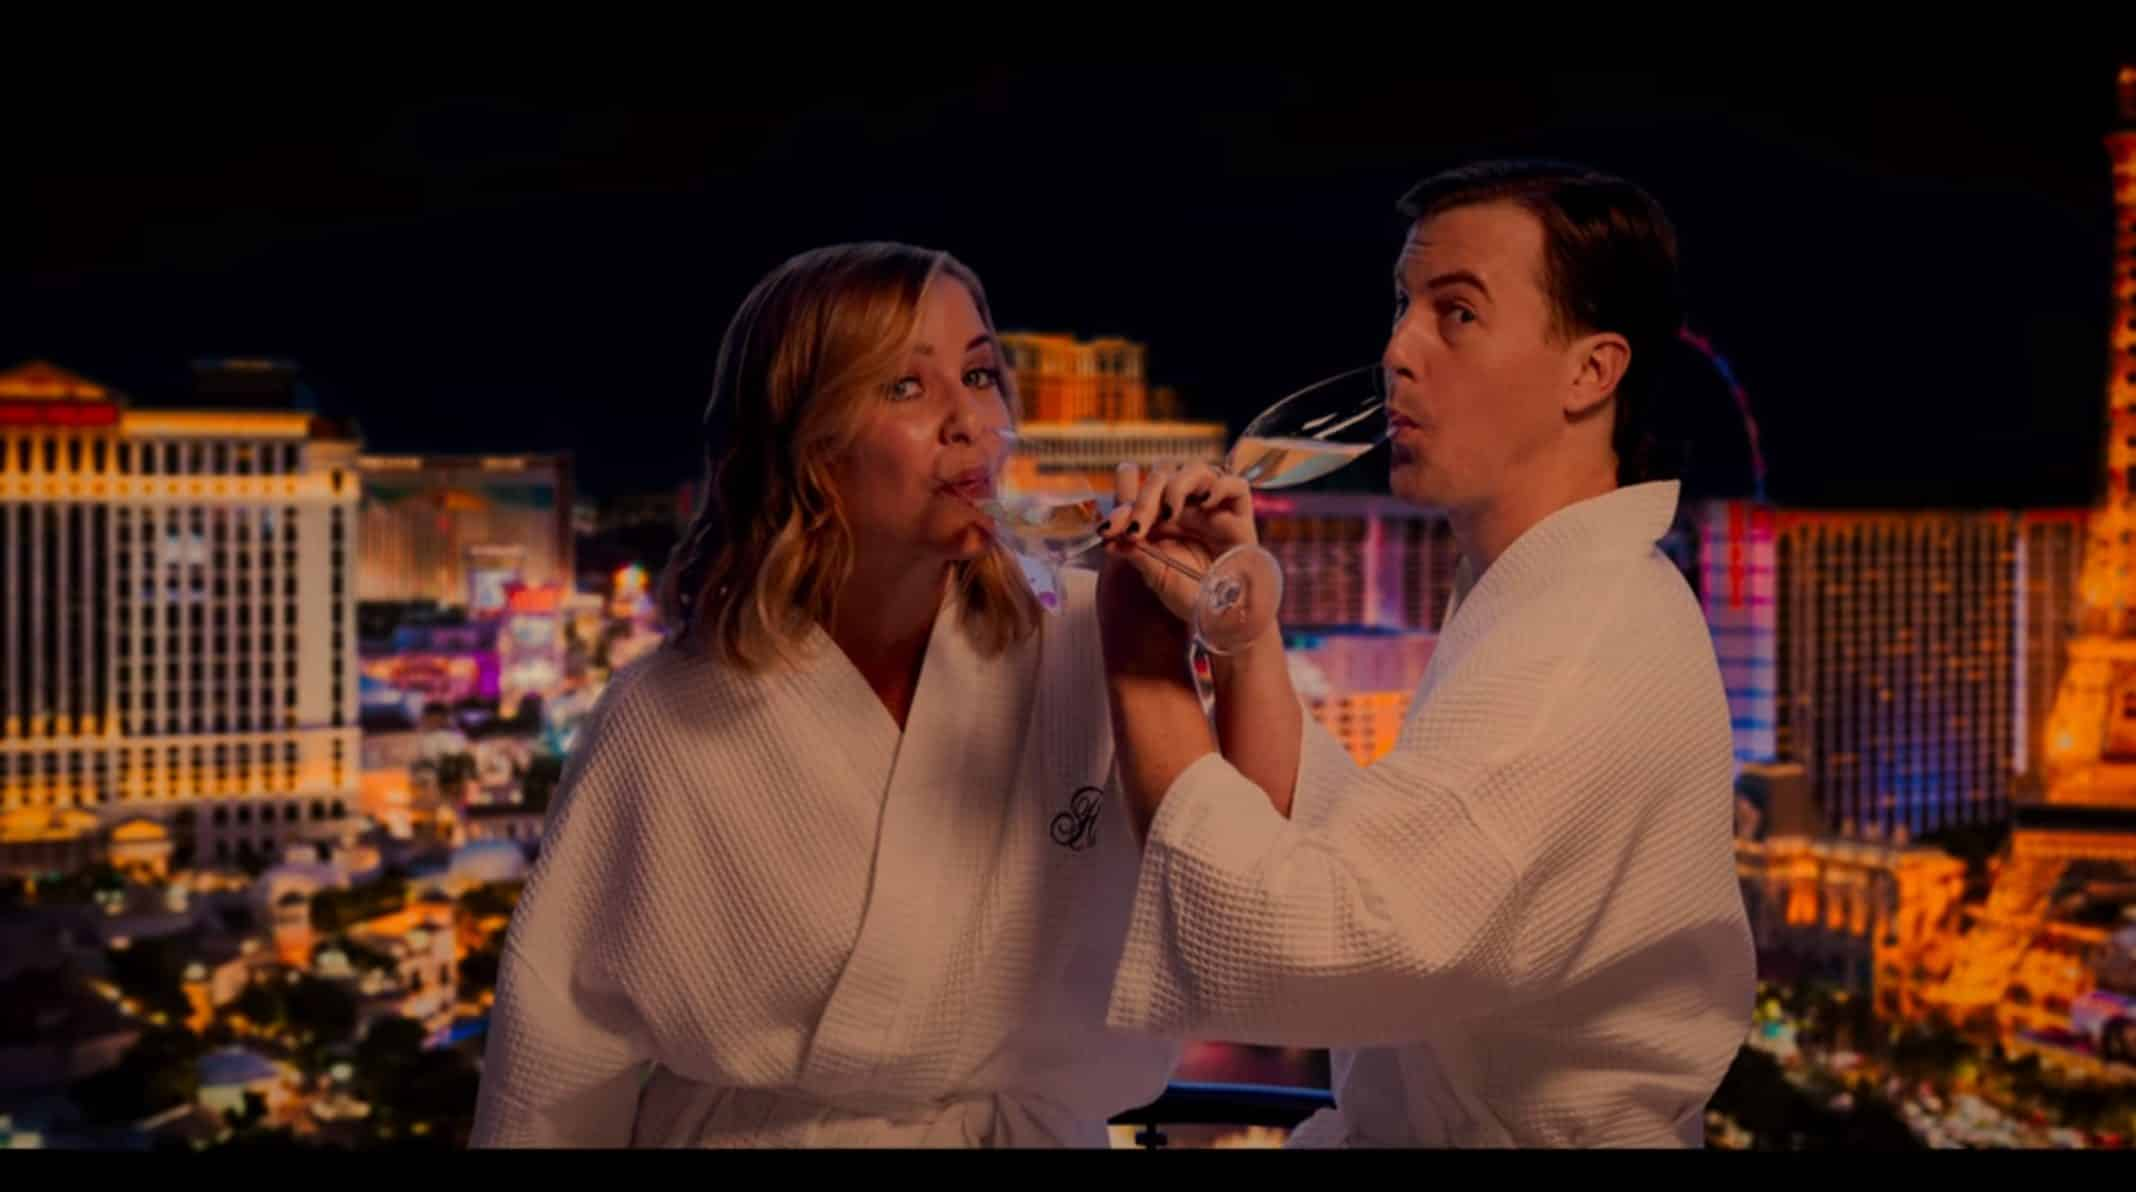 Abby (Jessica Capshaw) and Peter (Alex Moffat) on vacation